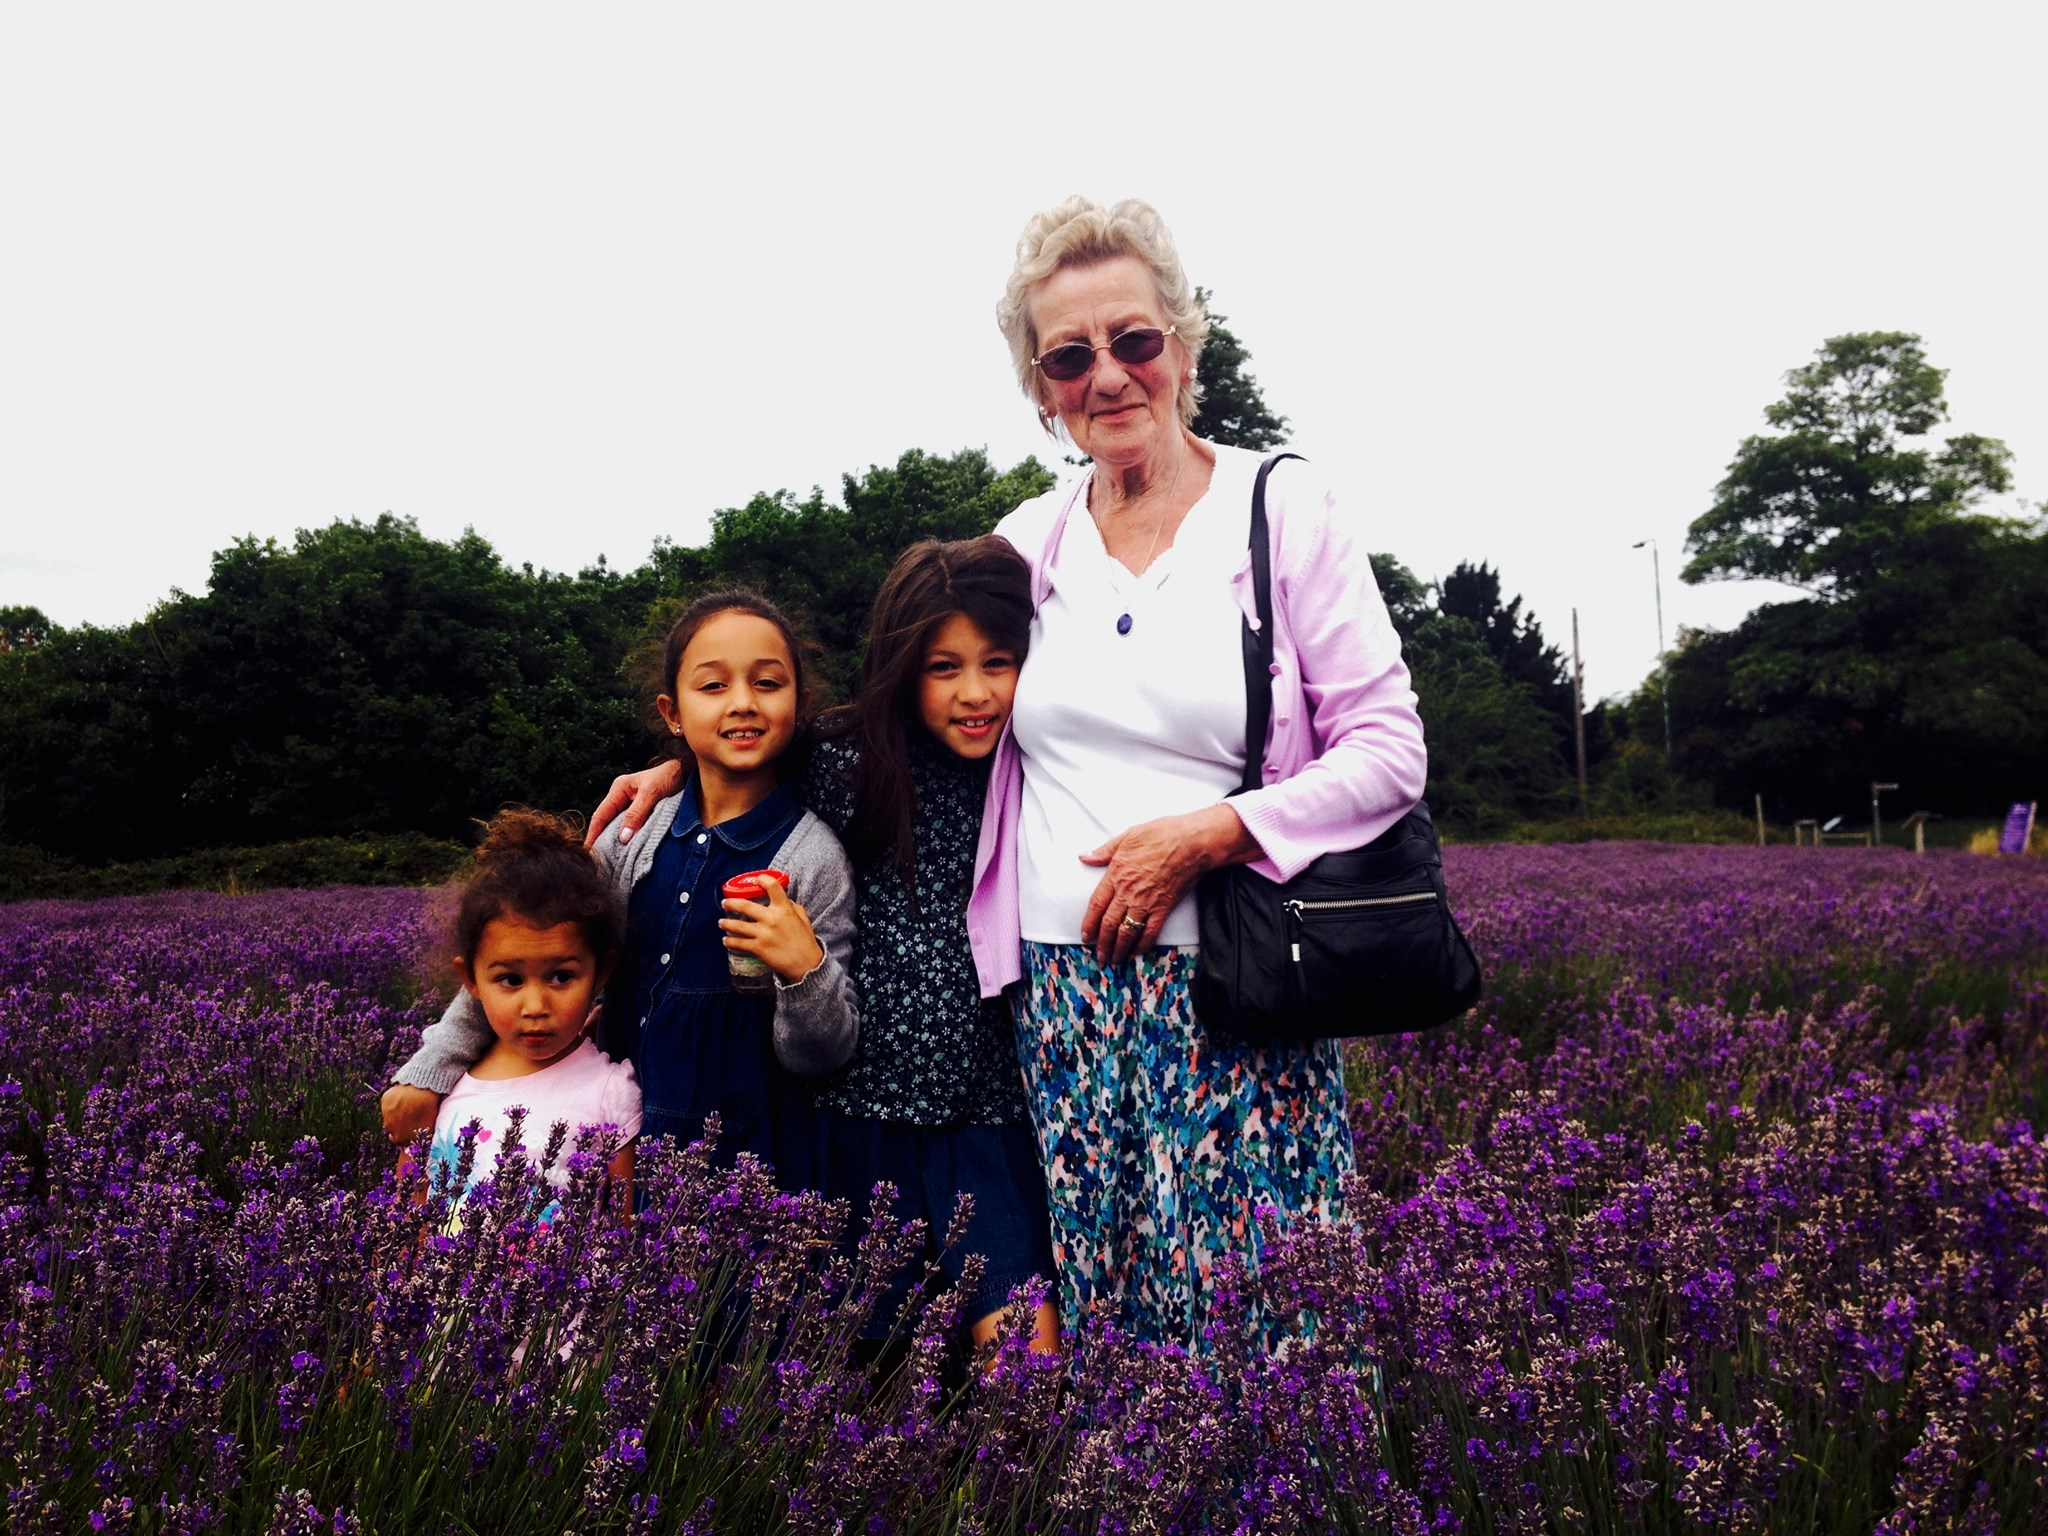 Rita bug hunting in the lavender fields with her girls - Aug 2015